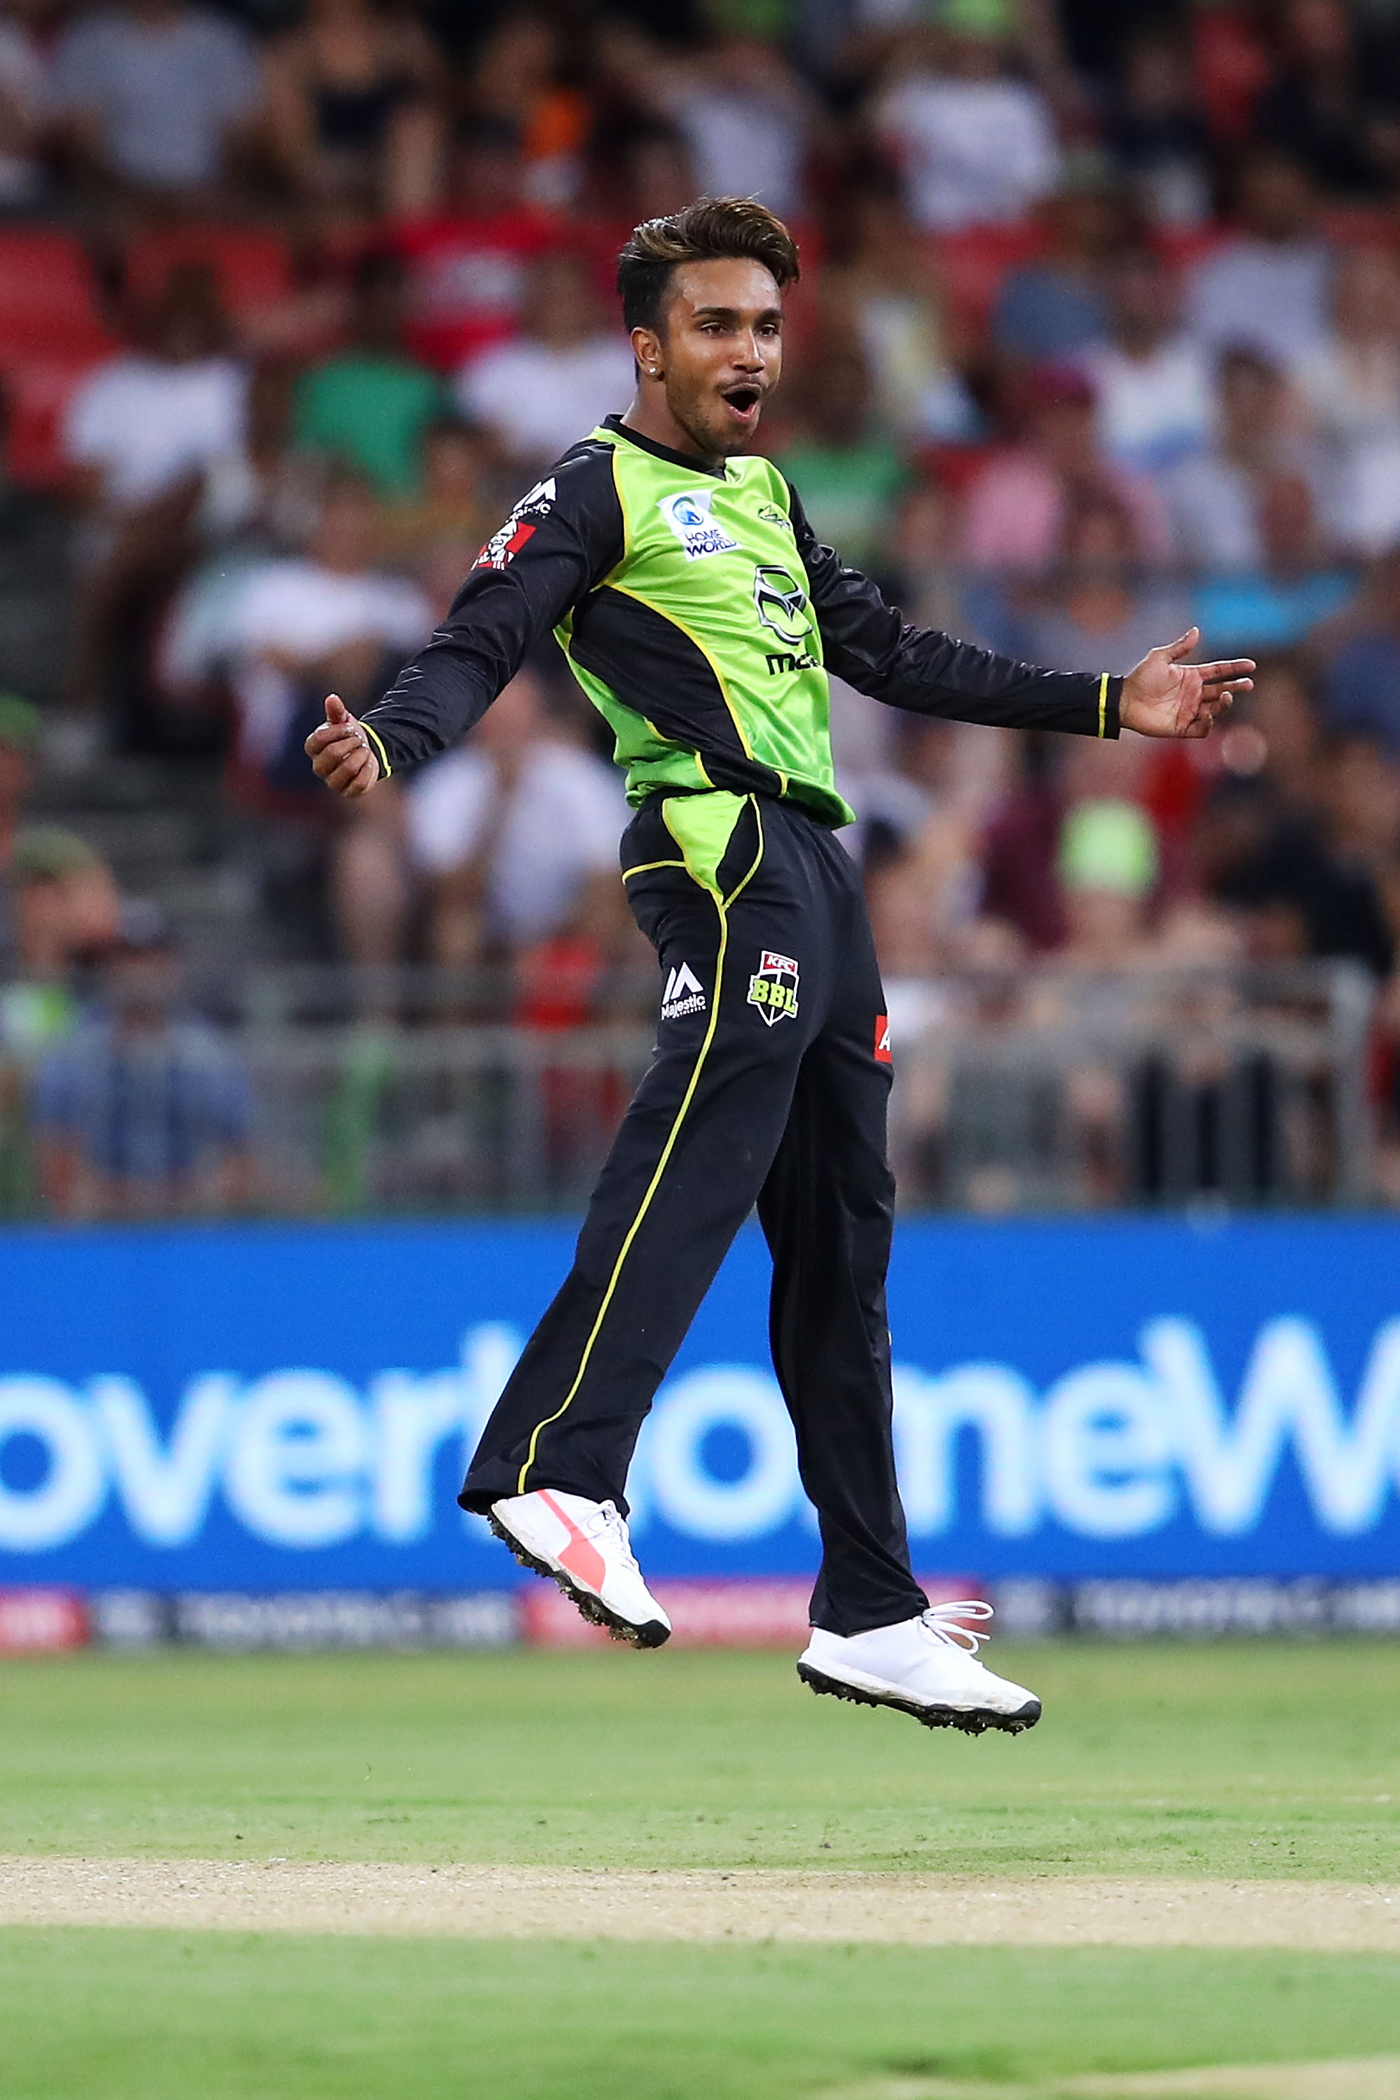 Mystery Spinner Arjun Nair Cleared of Suspect Bowling Action